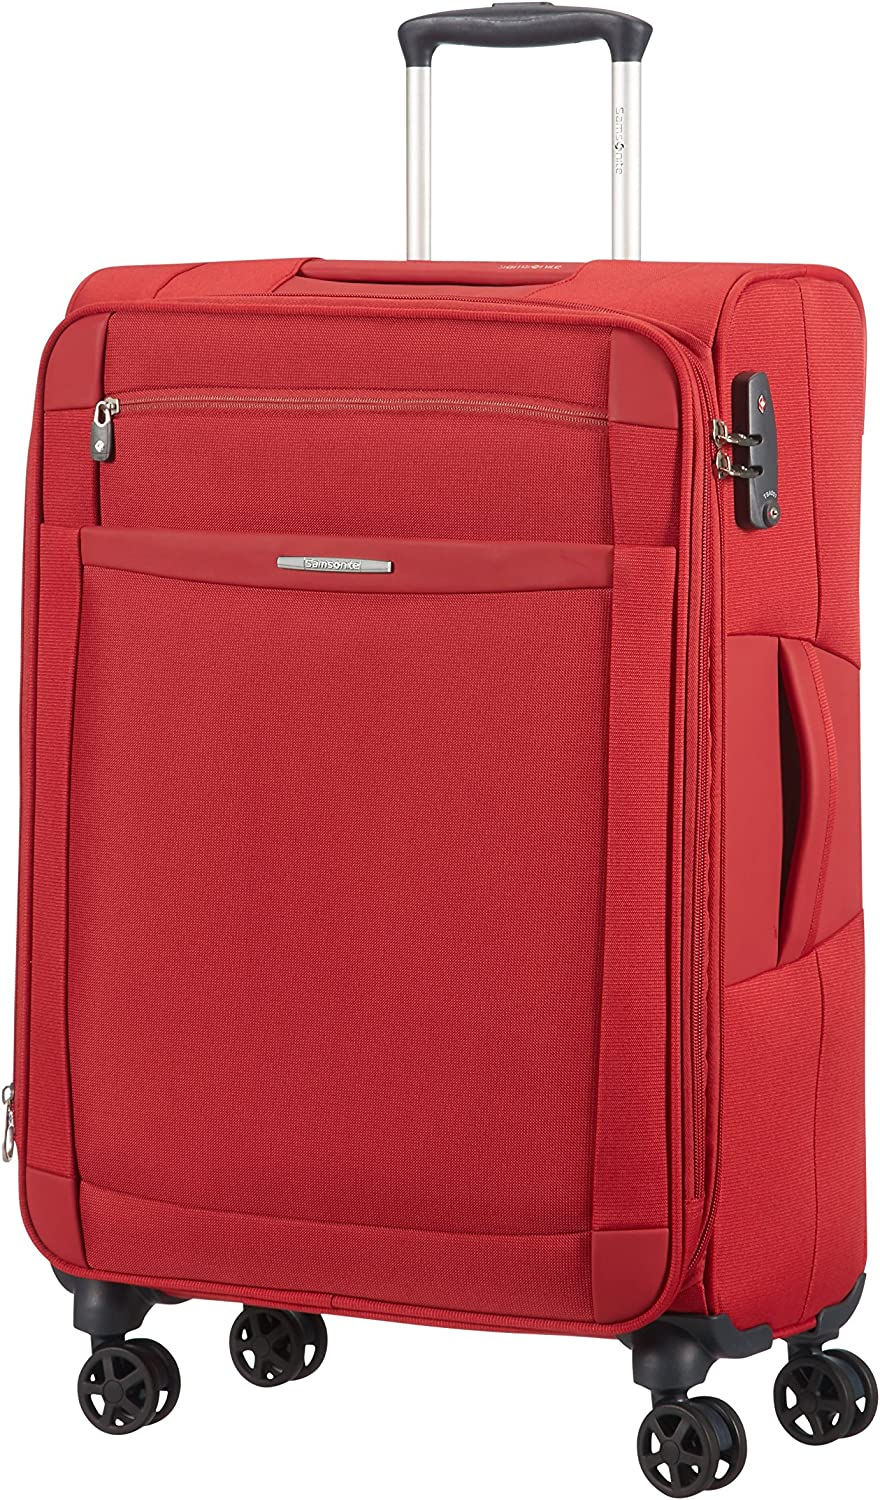 Samsonite Dynamo Spinner 67/24 Maleta, 67 cm, 66 L, Color Rojo